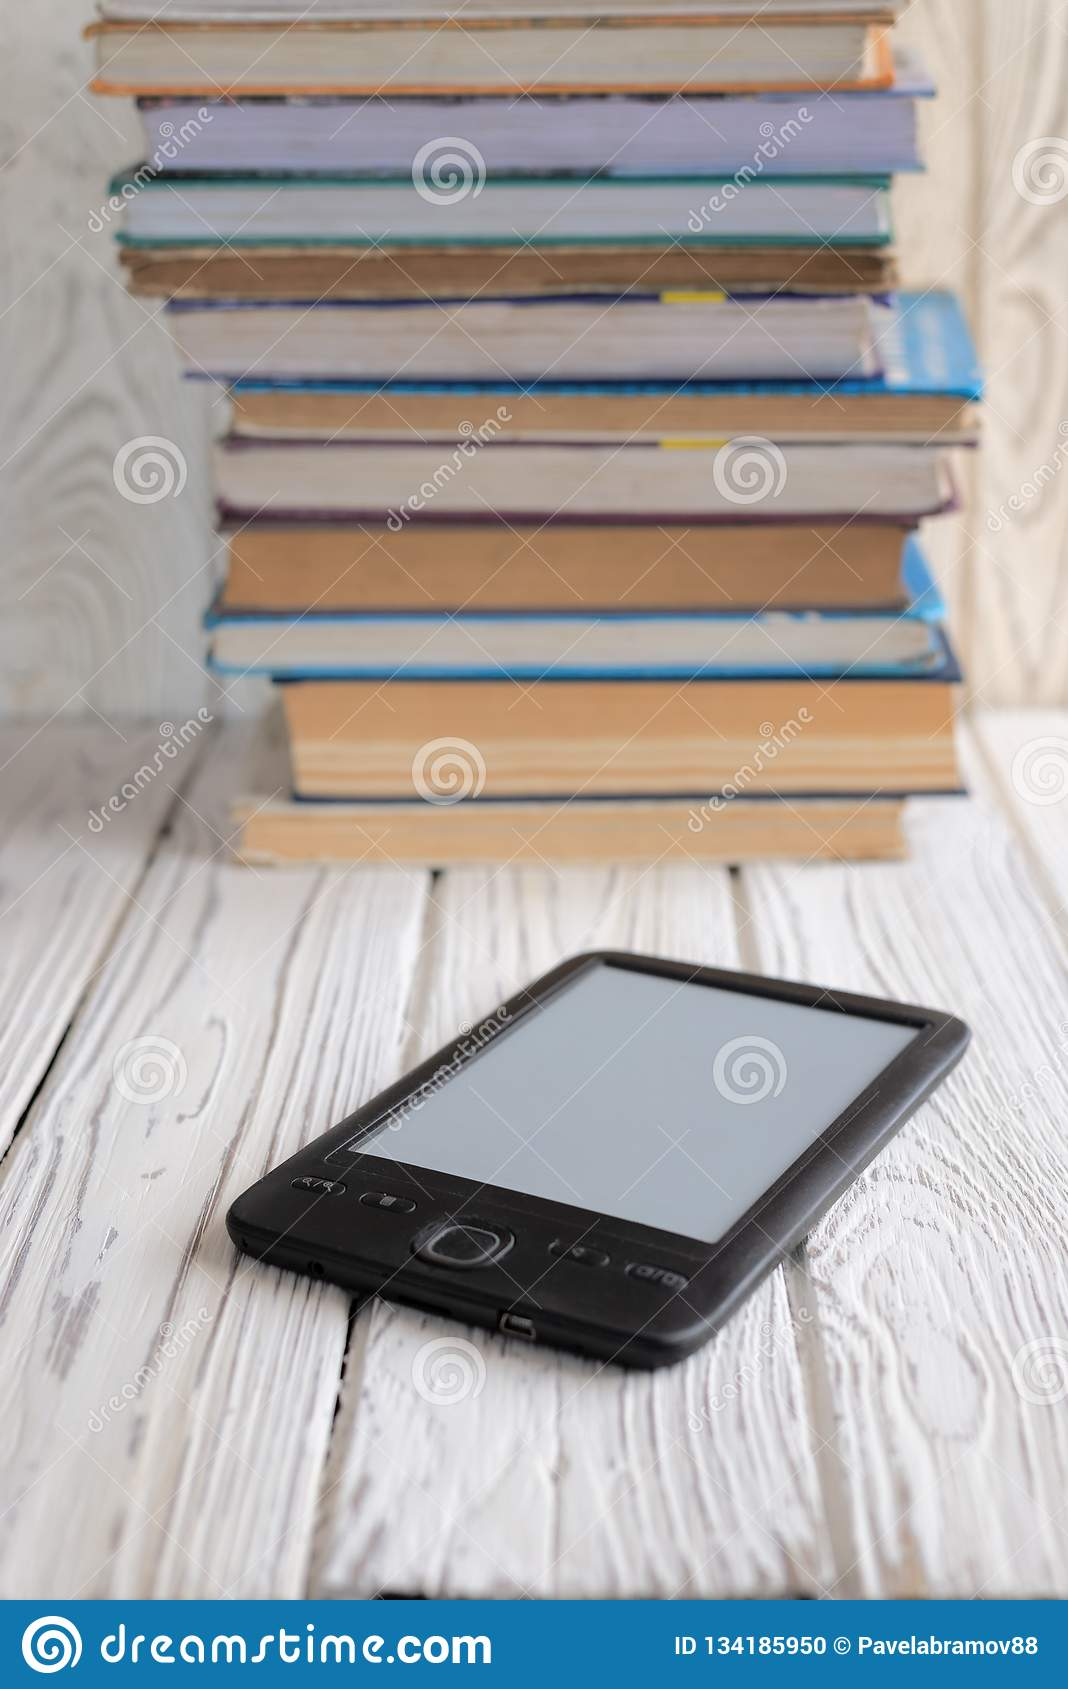 Electronic book shown versus several regular text books